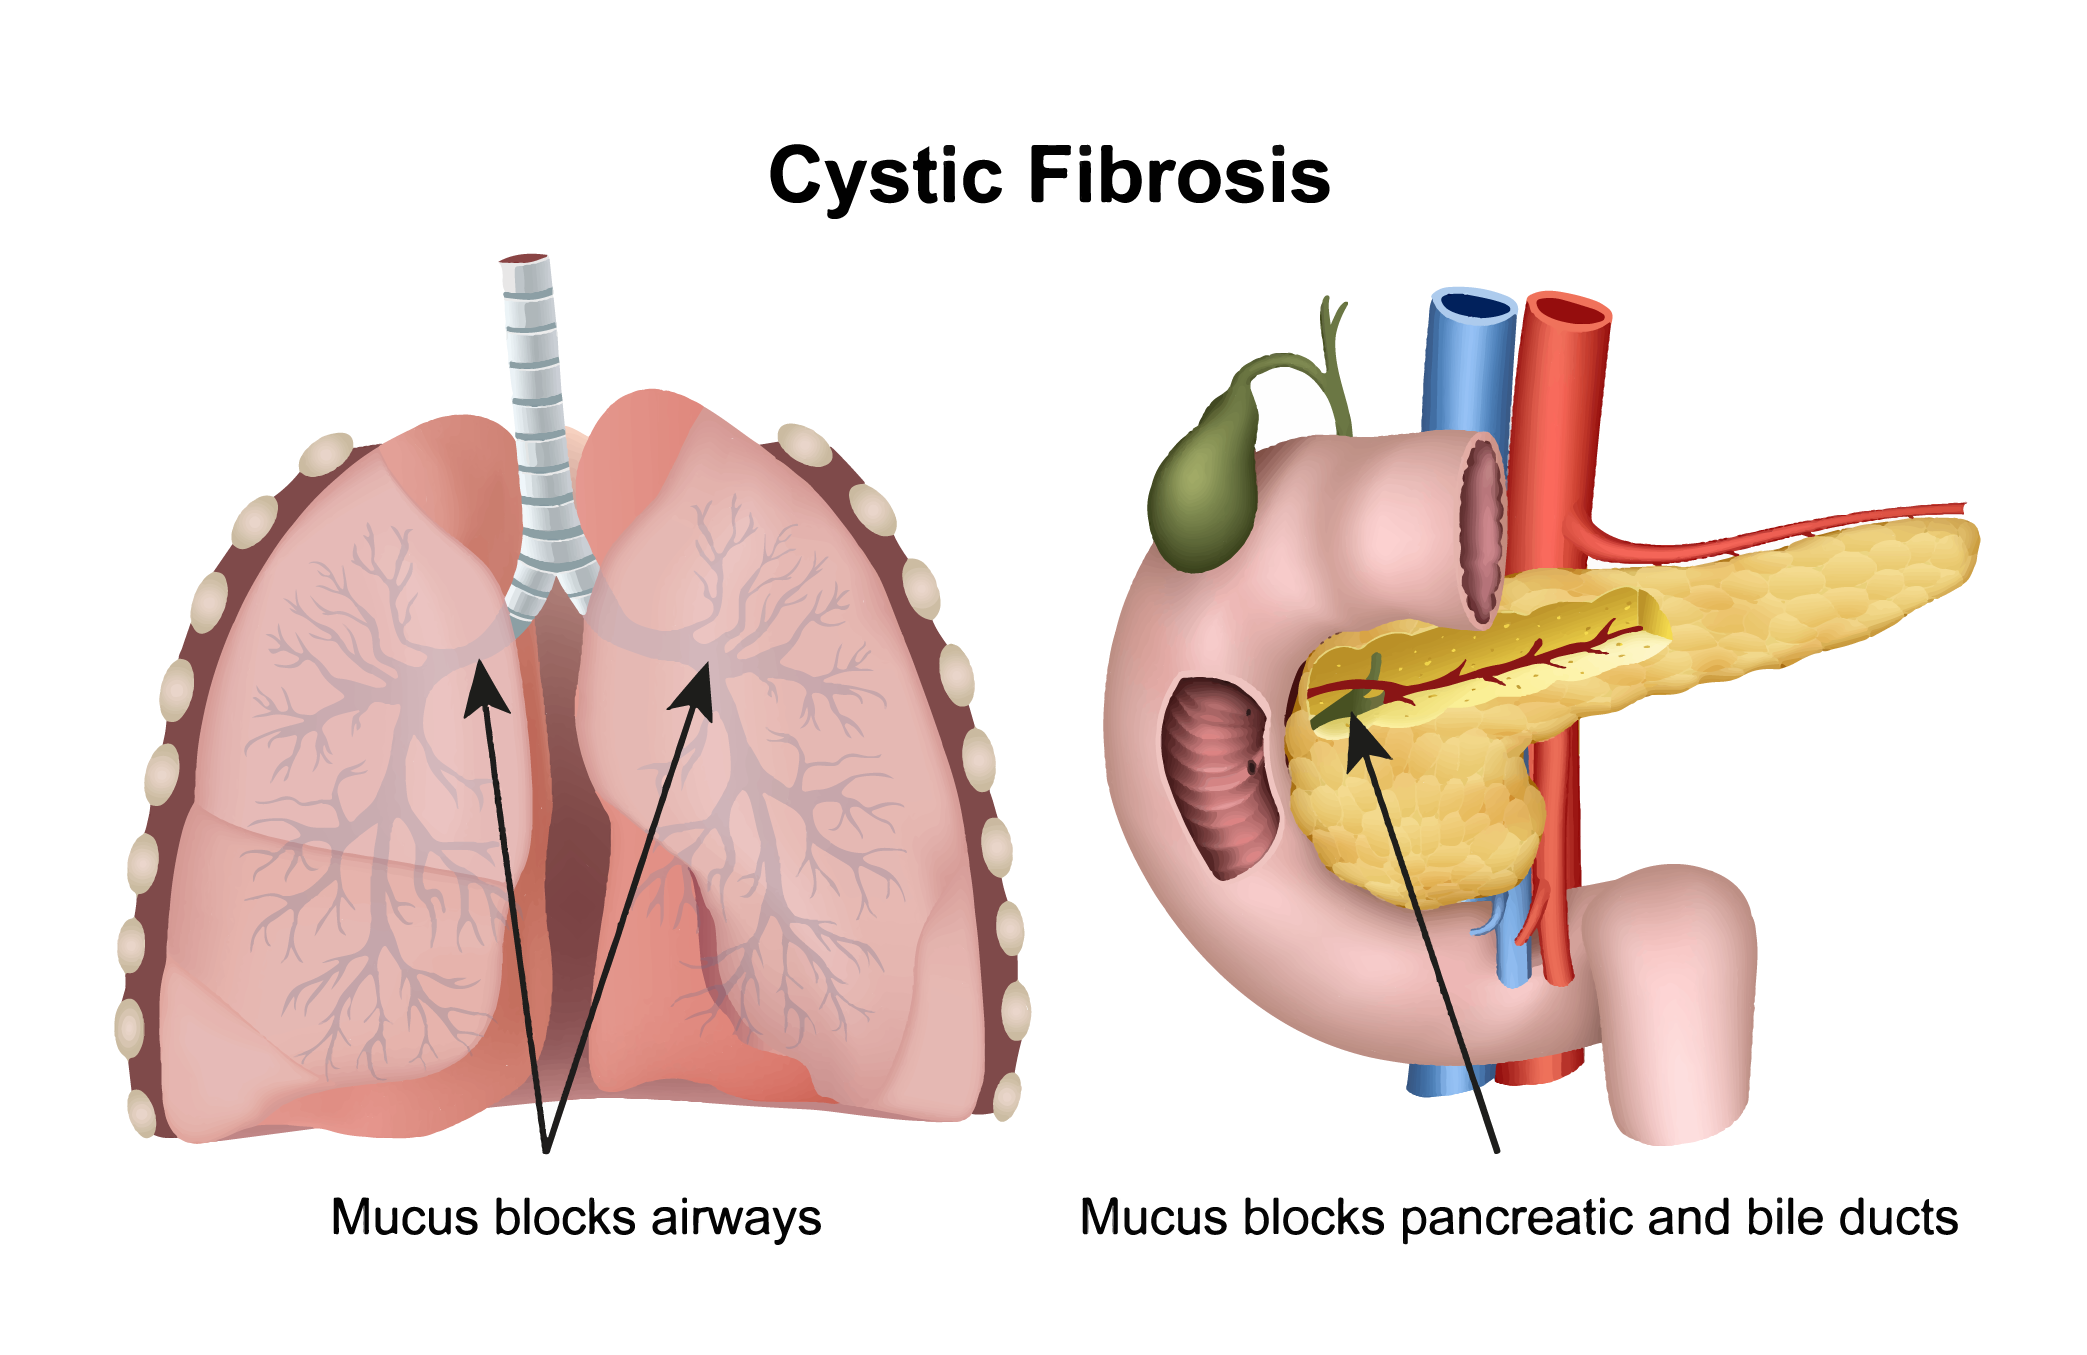 A diagram of the human lungs and pancreas that illustrates mucus blockage in patients with cystic fibrosis.